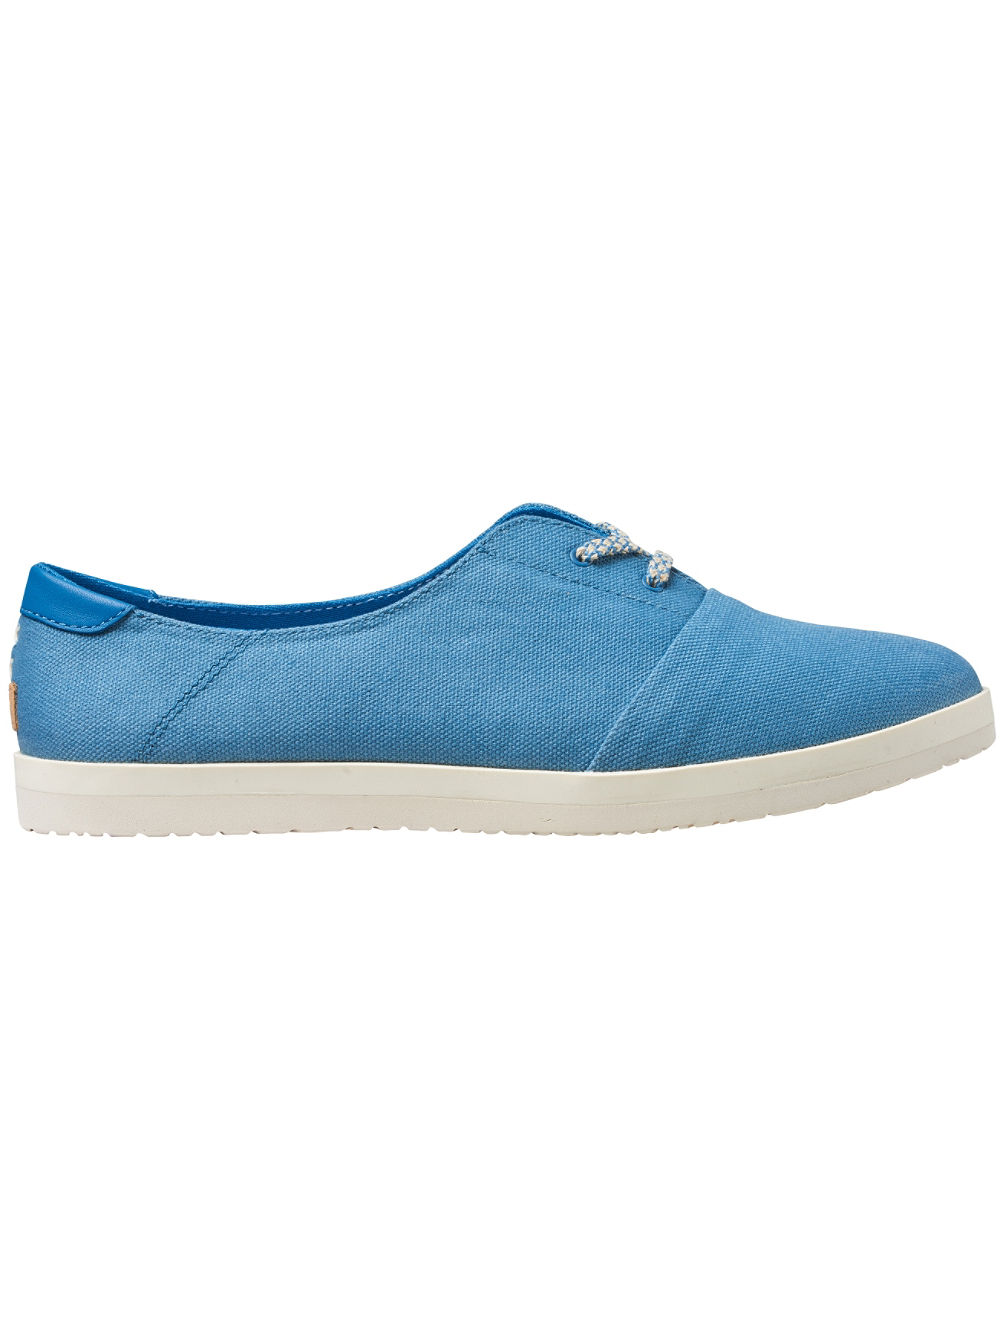 Pennington Sneakers Women